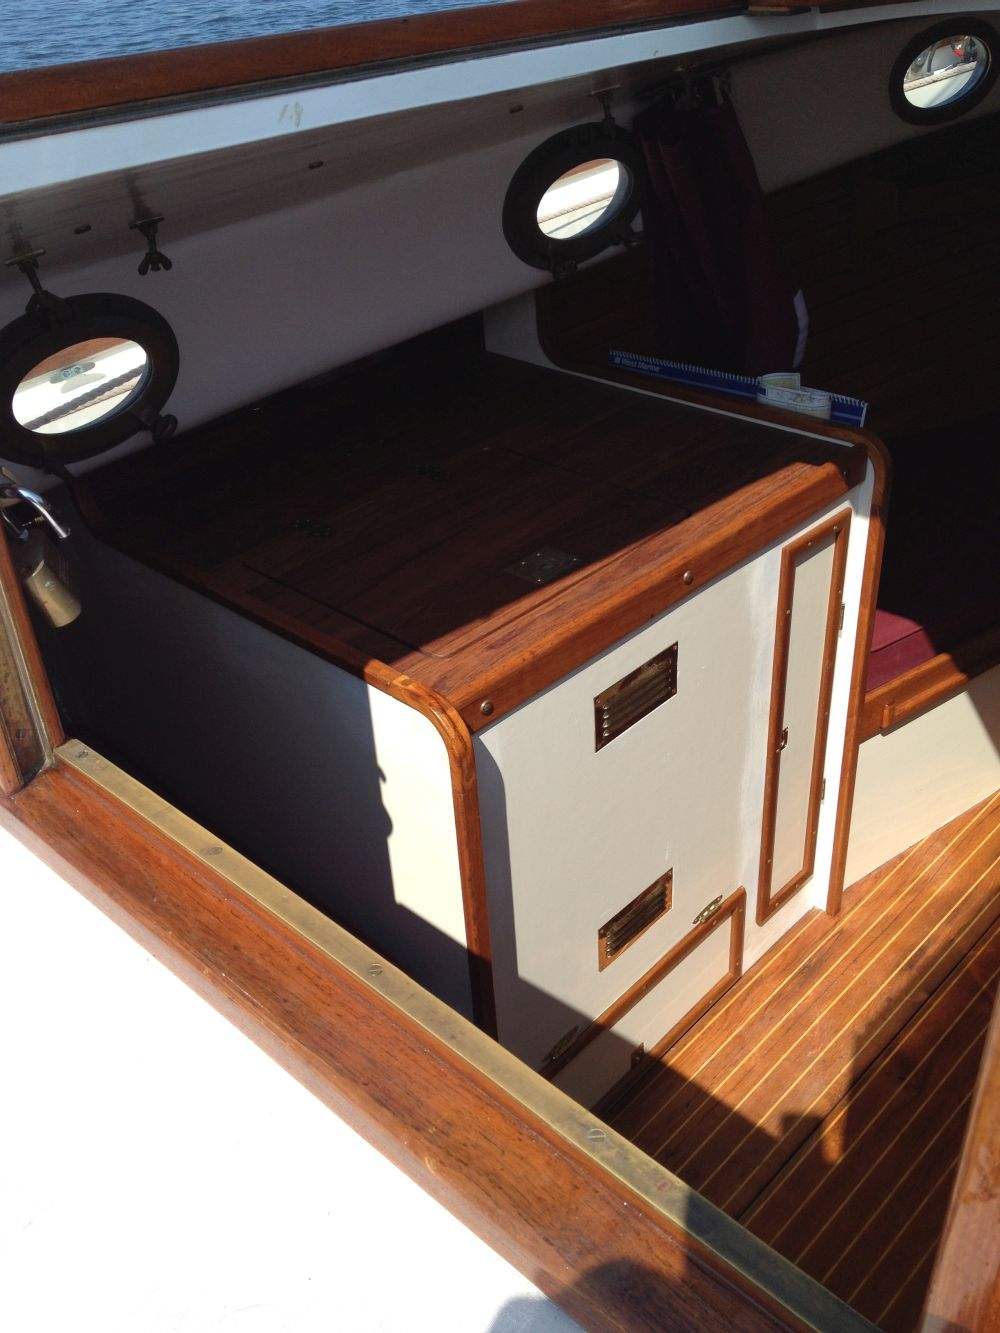 13-Finished-from-companionway